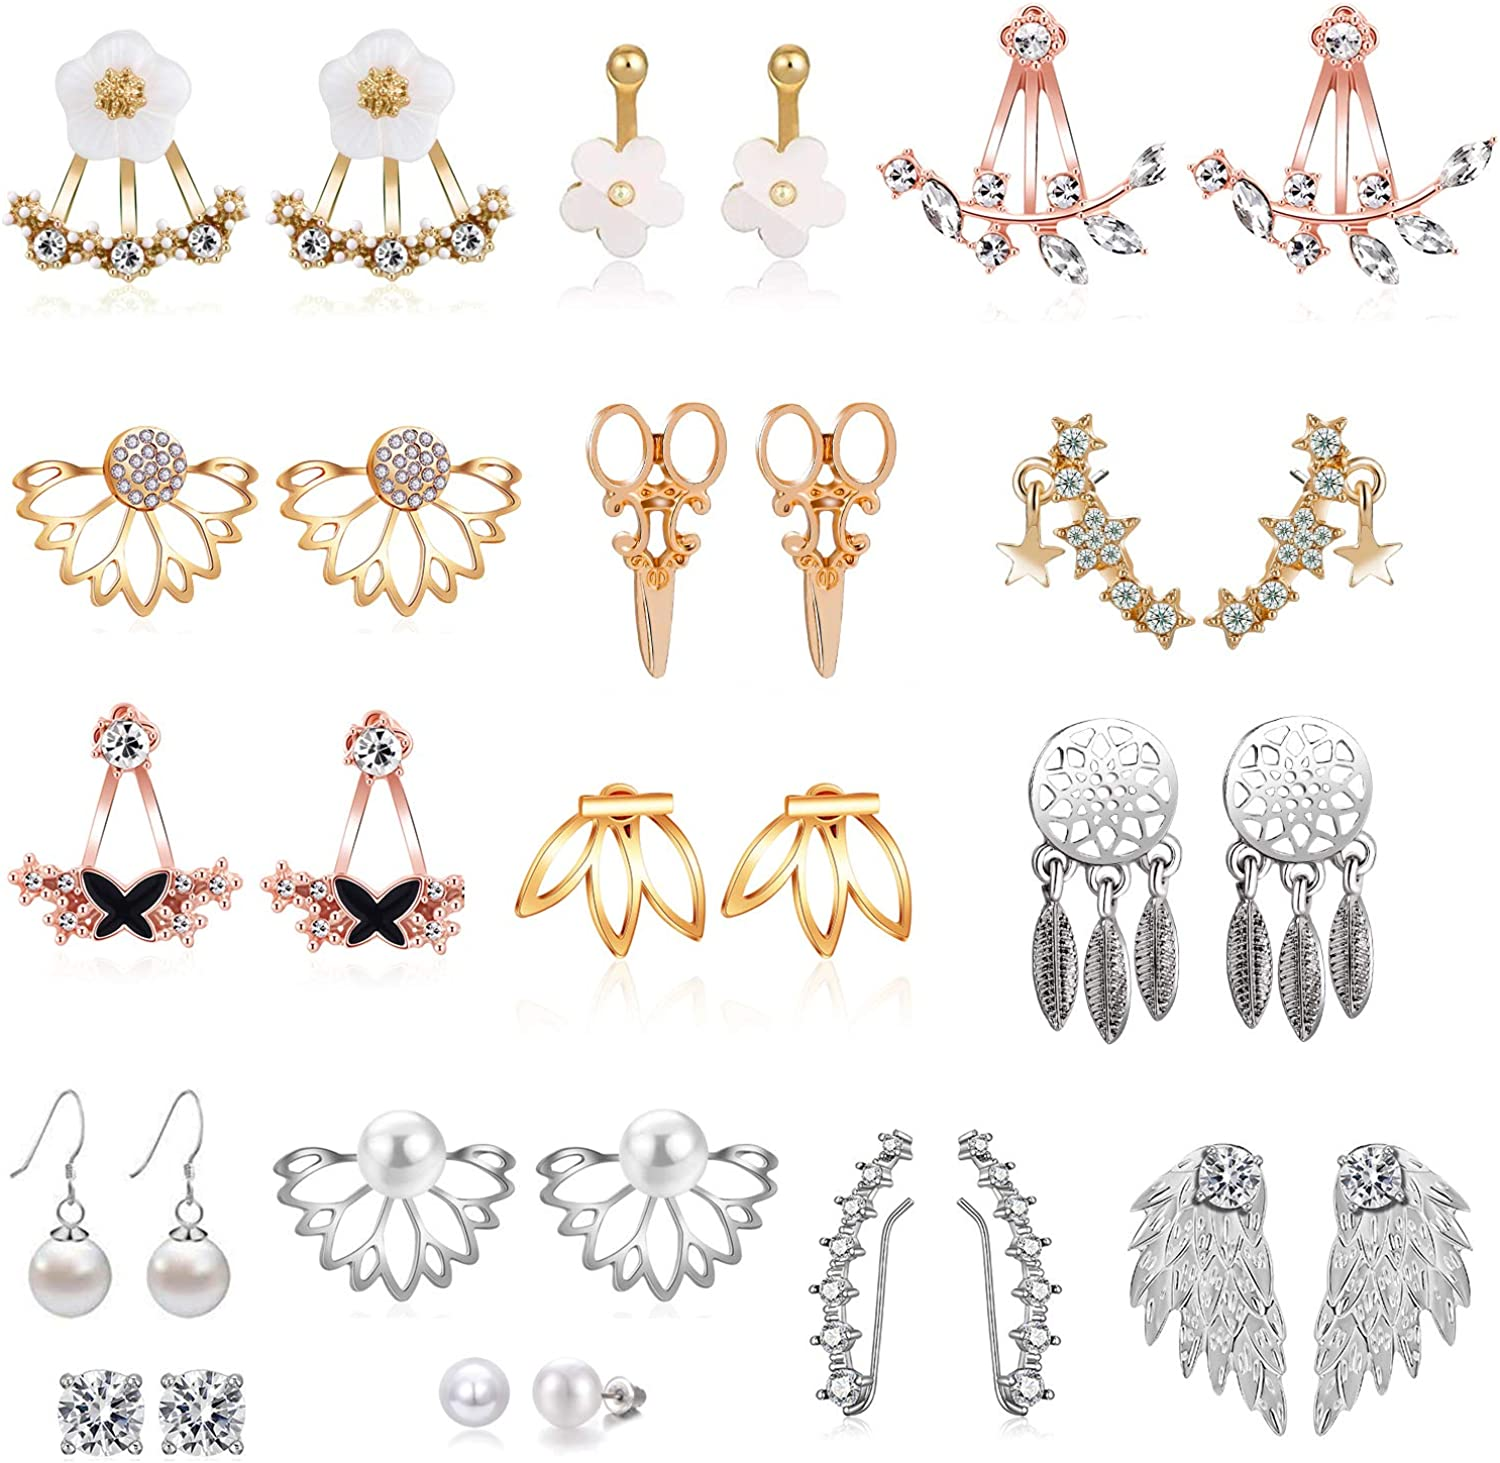 18/21 Pairs Multiple Lotus Flower Ear Jacket Earrings for Women and Girls-Minimalism CZ BarTurquoise Studs-Chic Fashion Front Back Stud Earring Set